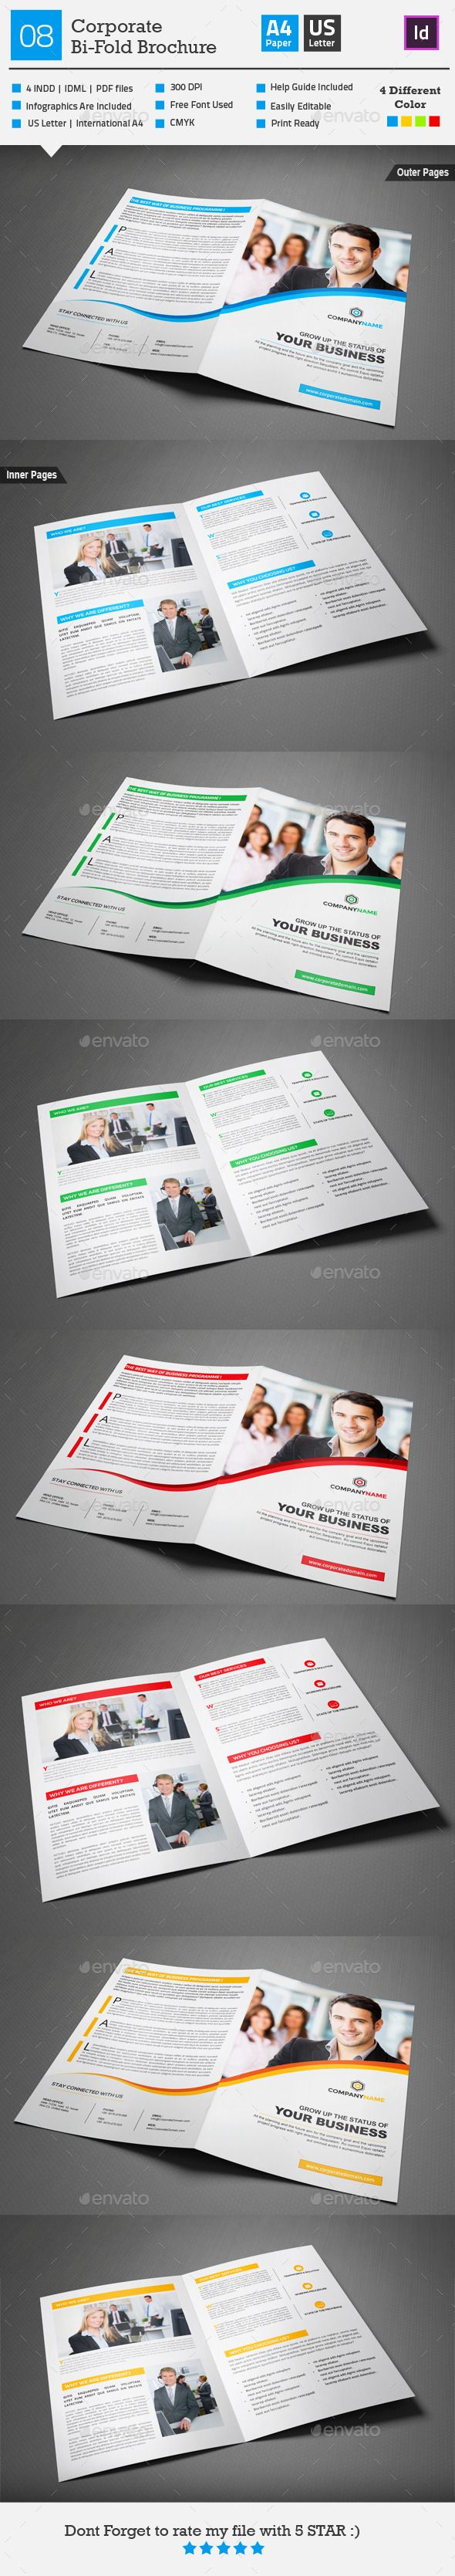 Best Template X Booklet Brochure Images On Pinterest - Brochure booklet templates